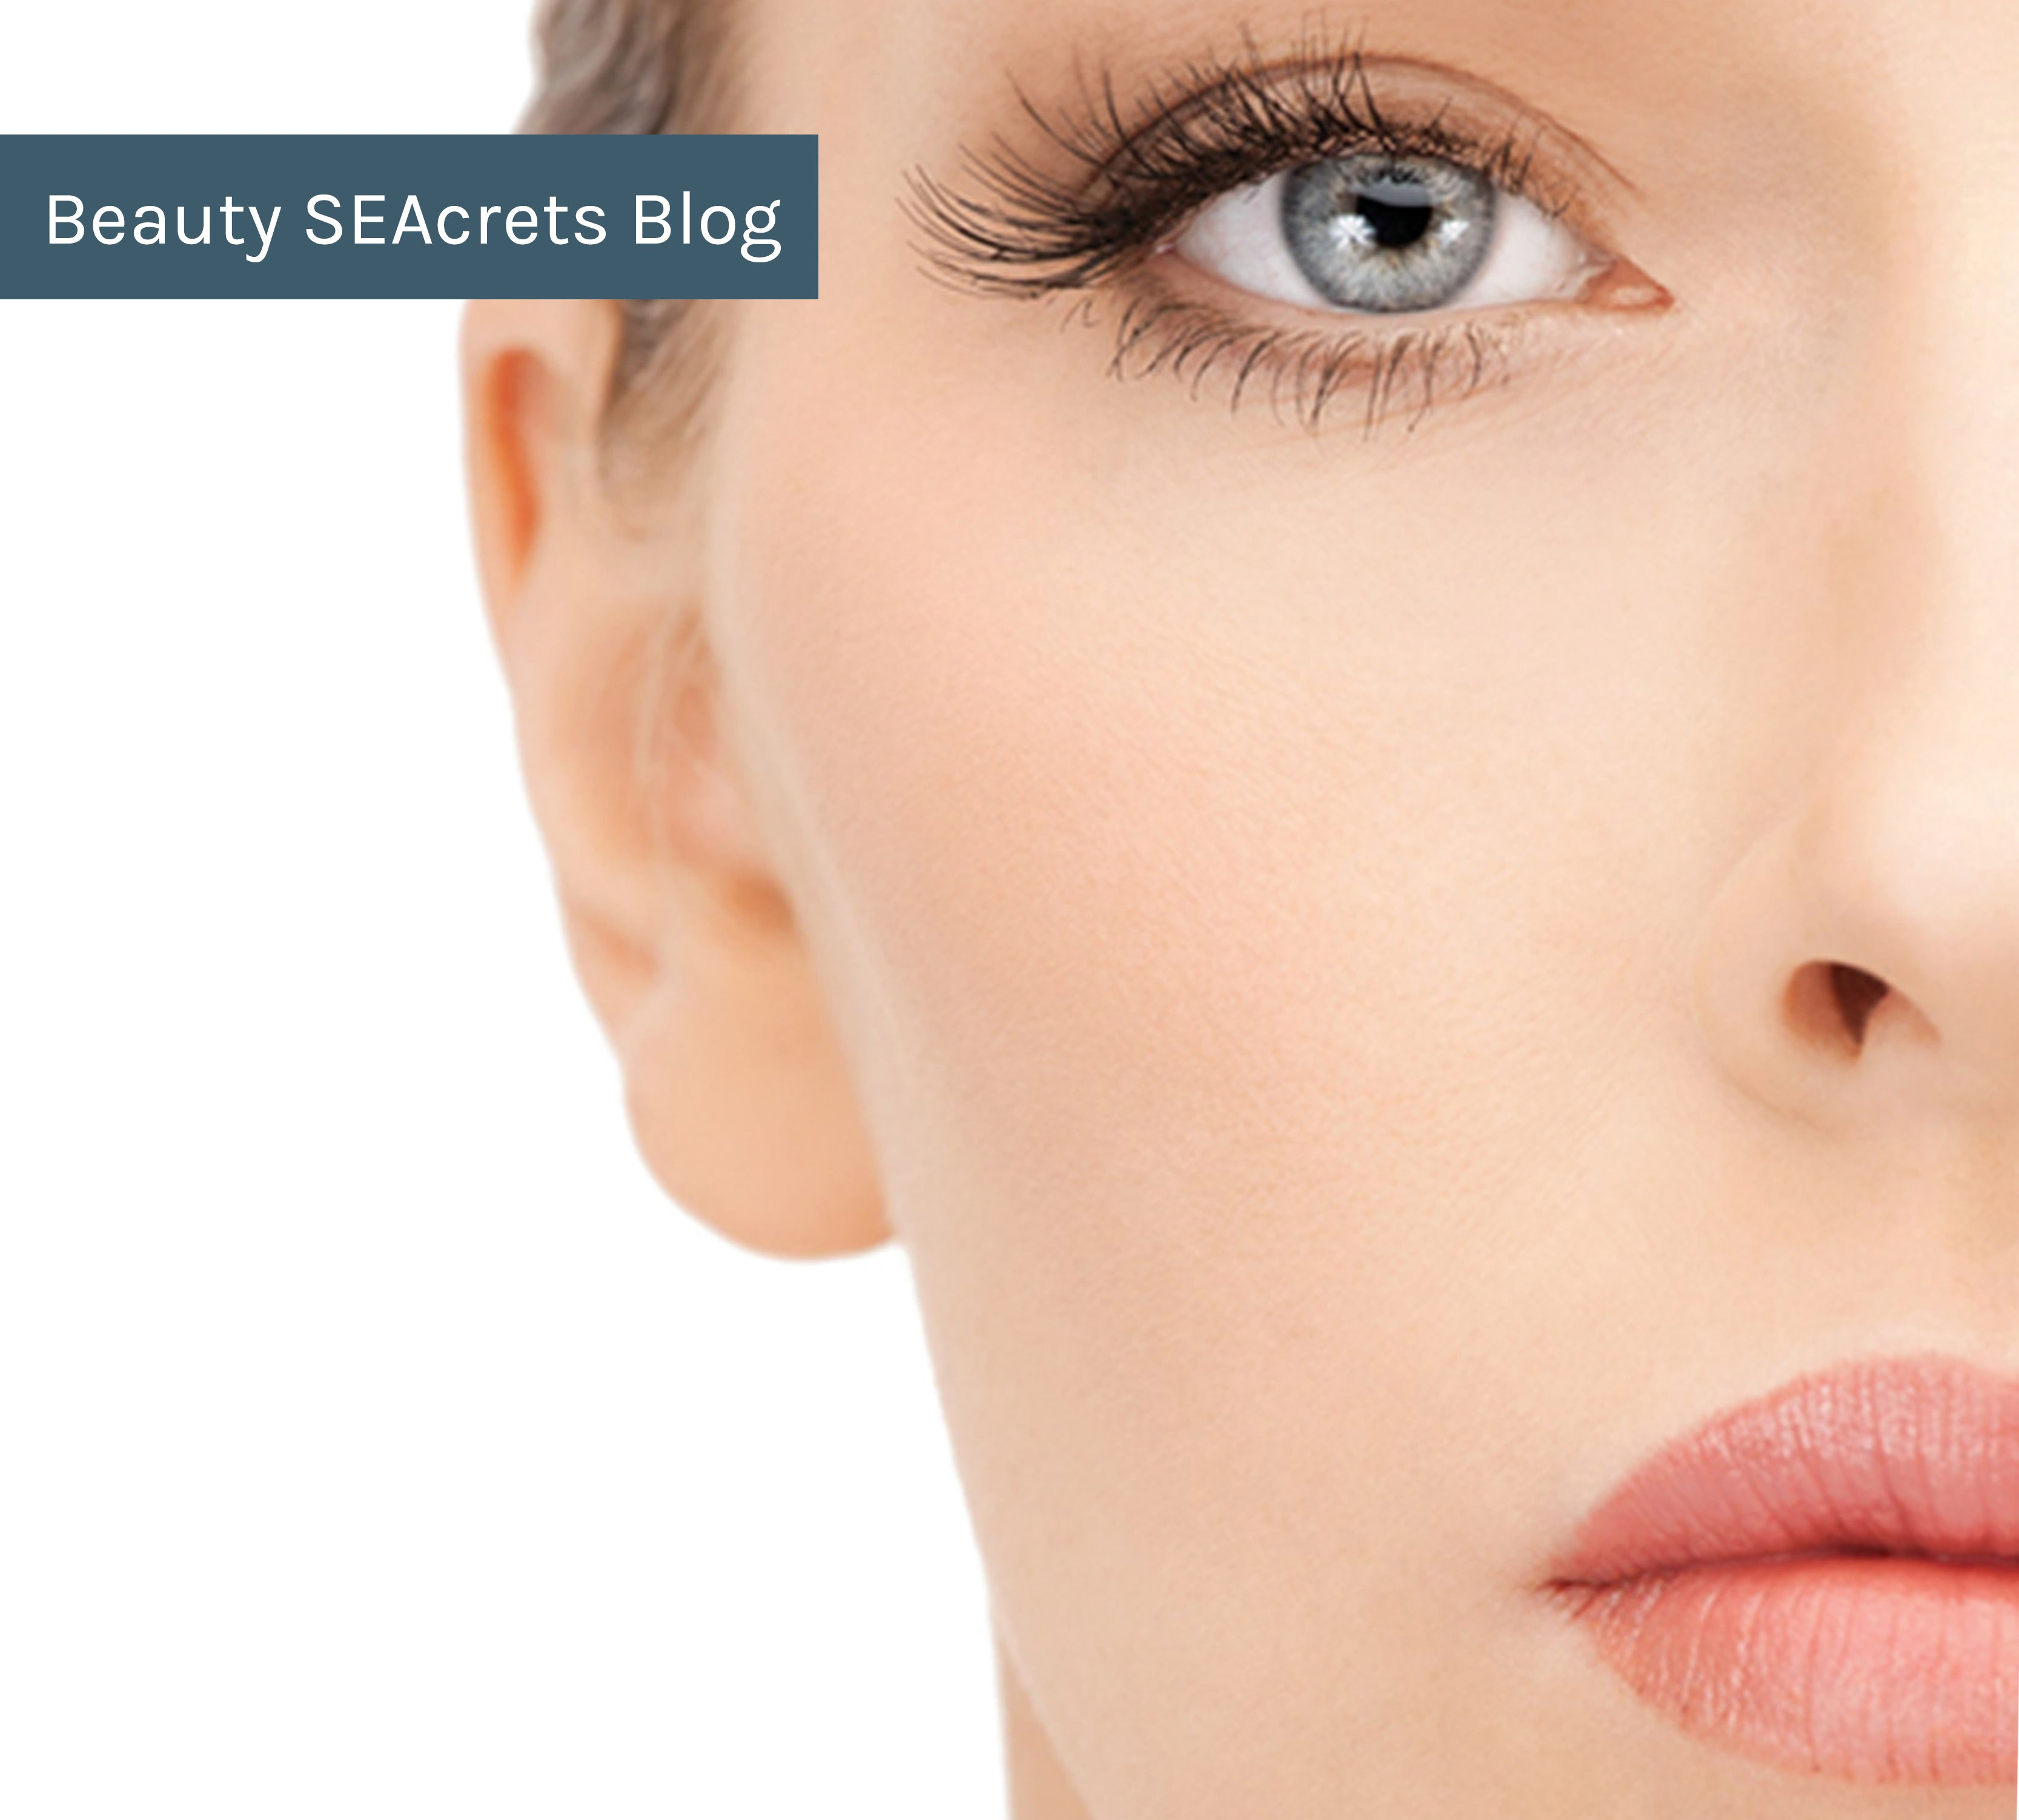 Dark Under Eye Circles and Puffy Eyes? Fall Beauty Tips for